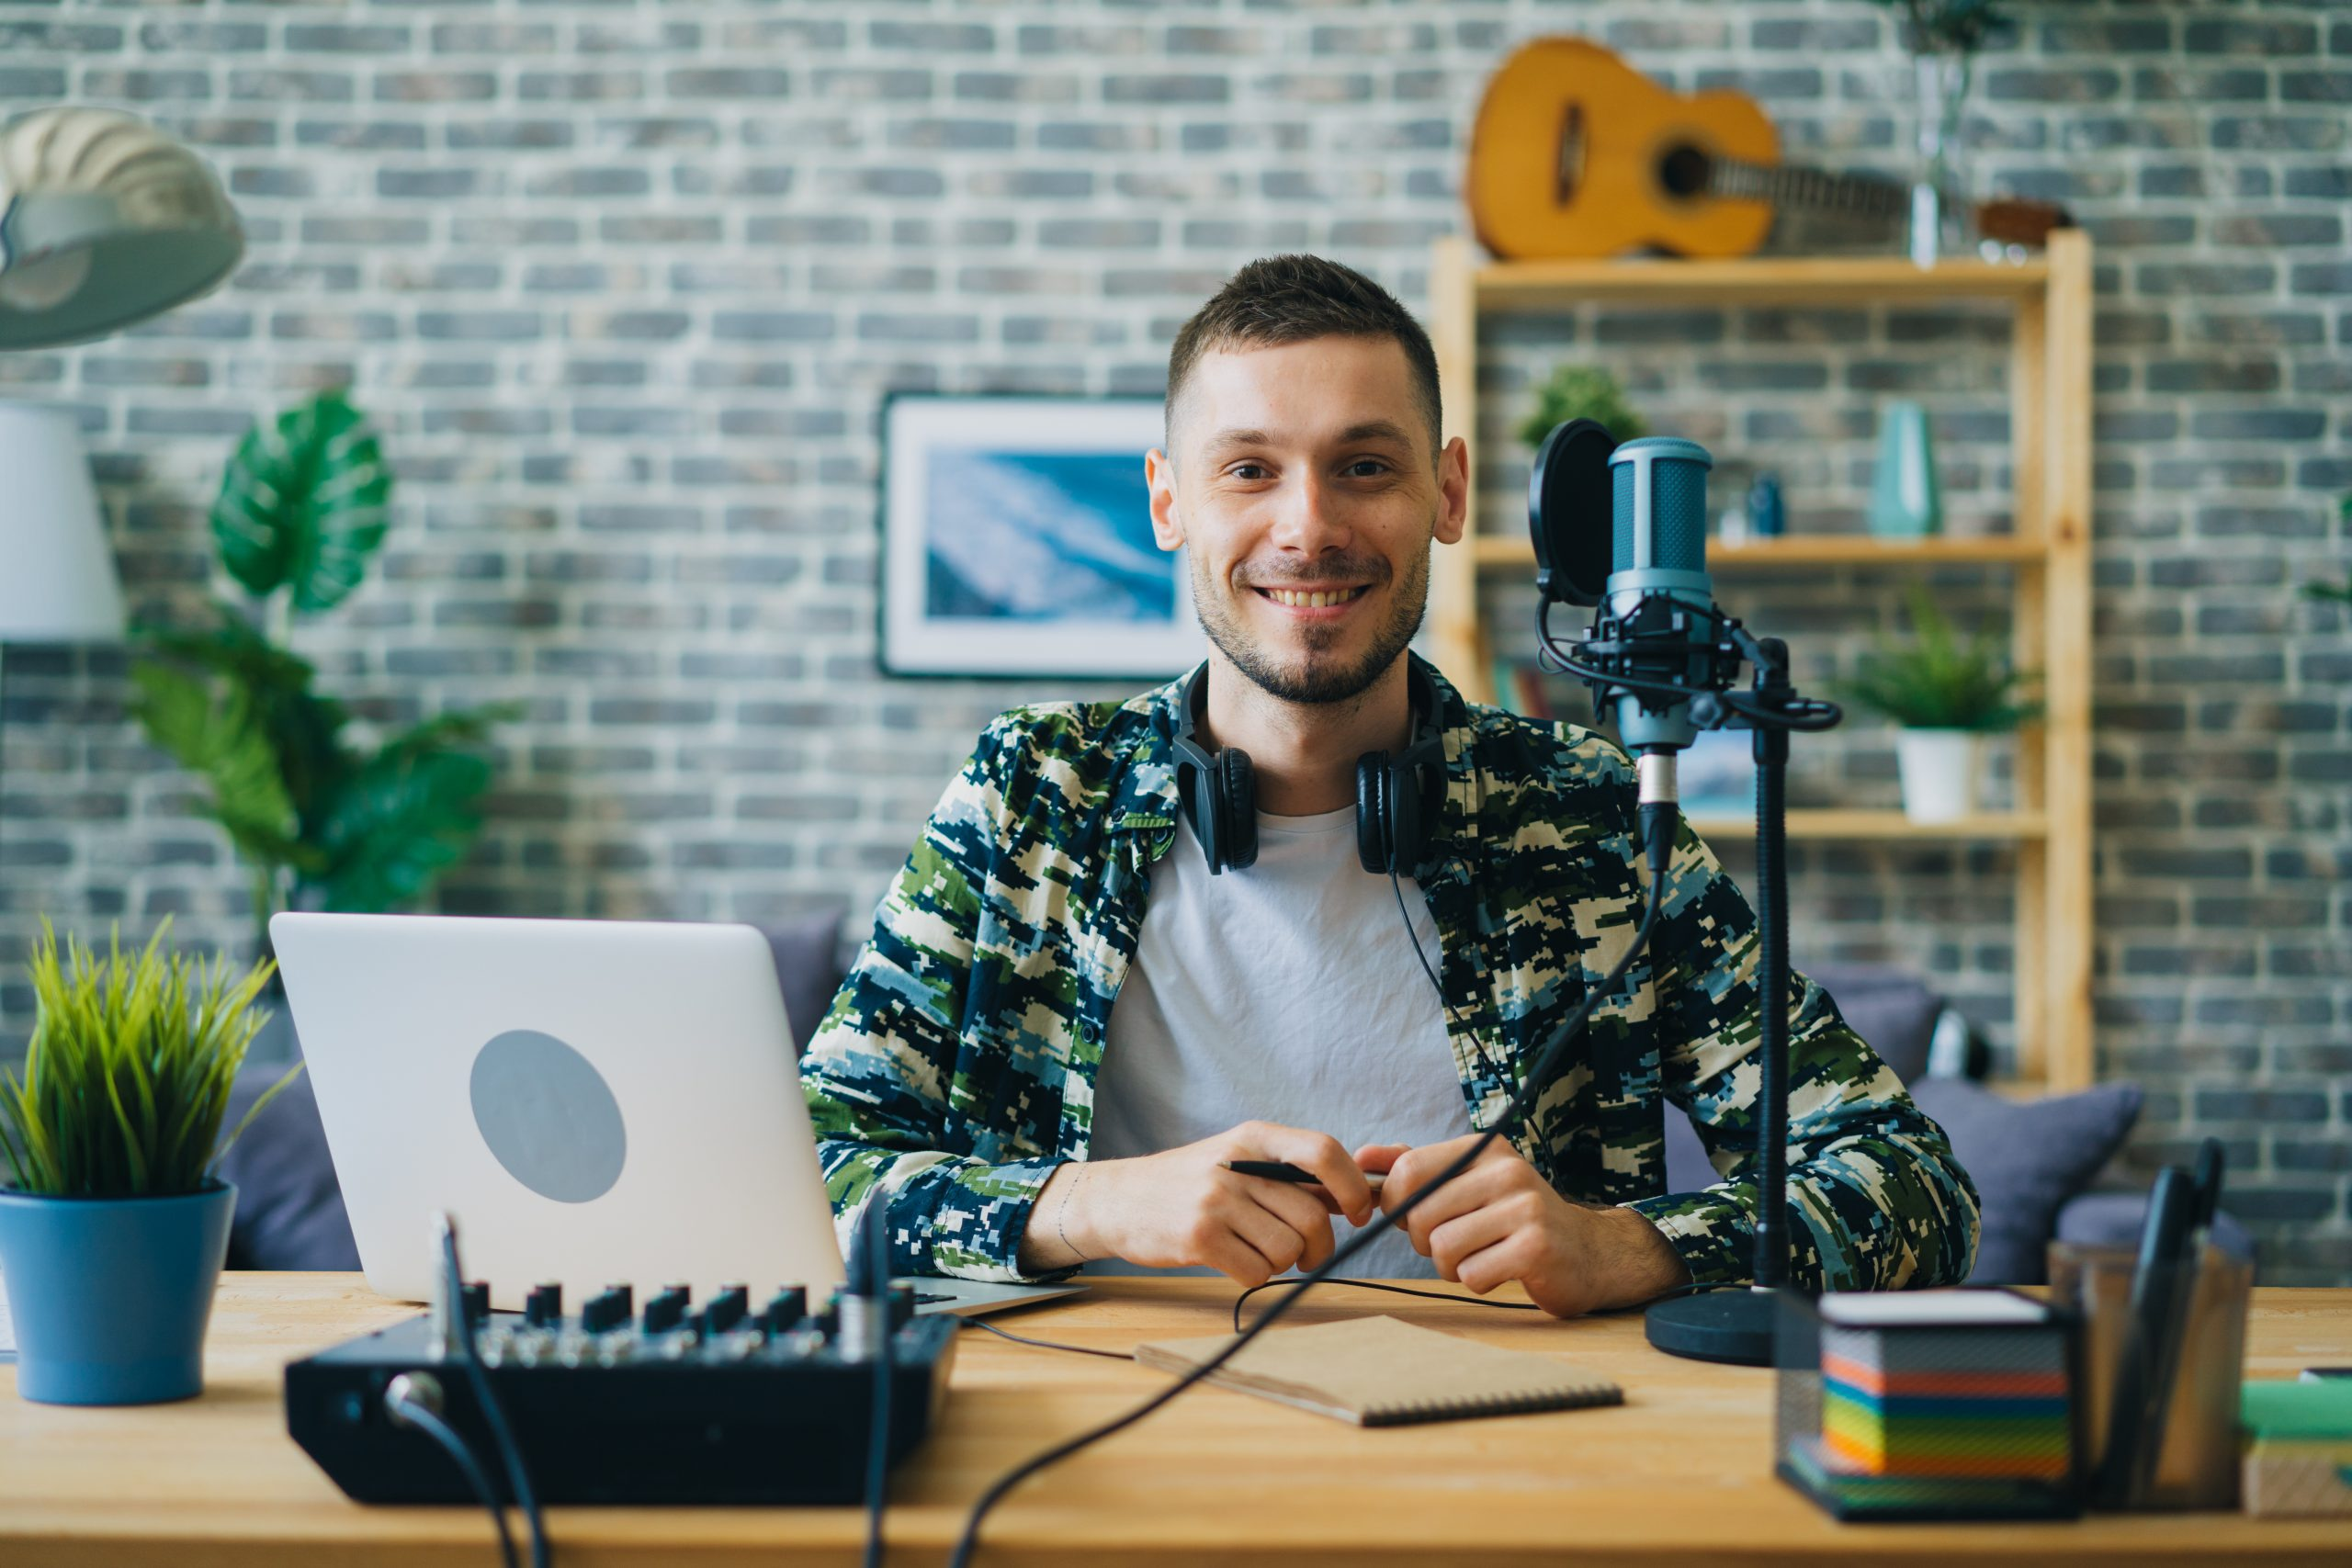 Portrait of young man blogger in recording studio sitting near microphone smiling looking at camera. Blogging, modern technology and people concept.